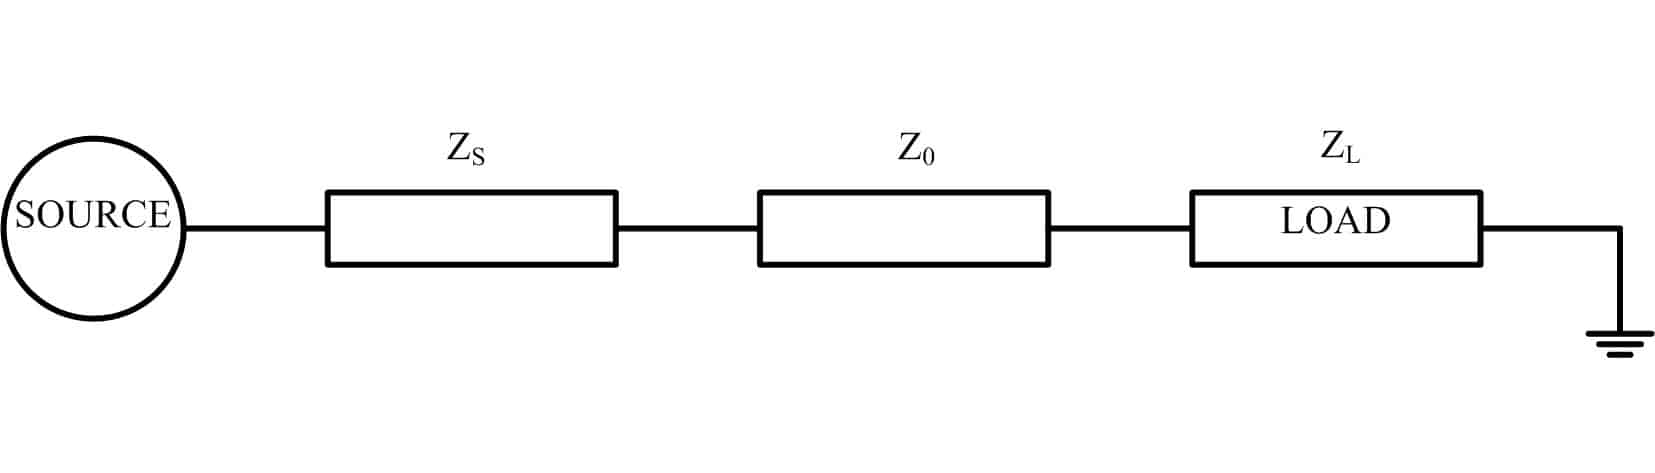 For impedance matching, conditions to be satisfied are either ZS=ZLor Z0=ZL